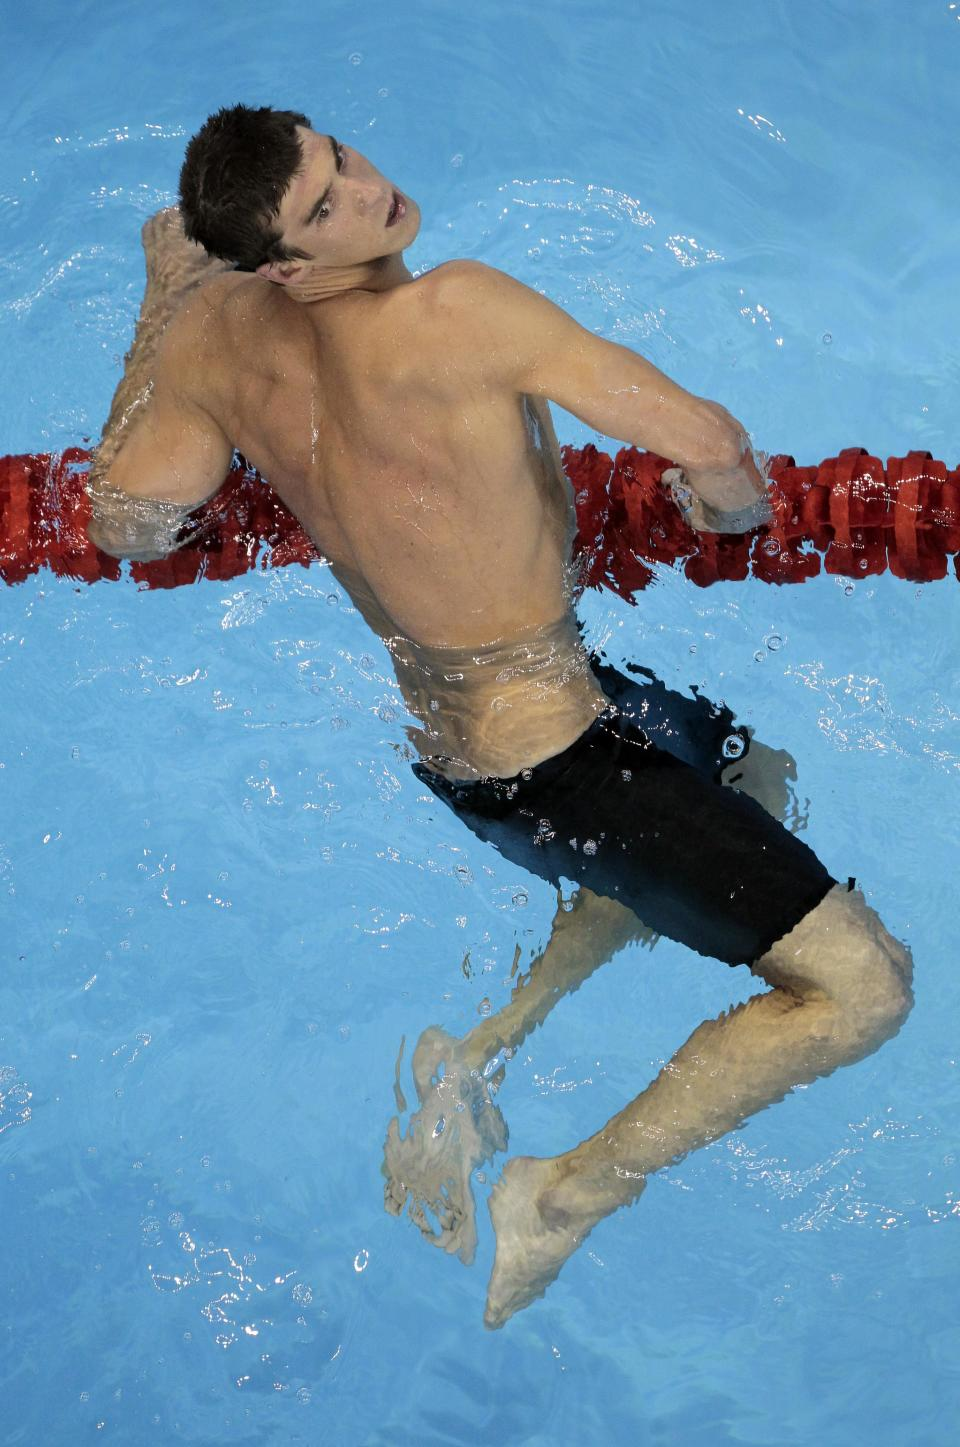 U.S. Michael Phelps rests after his race in the men's 200m Butterfly semifinals at the FINA Swimming World Championships in Shanghai, China, Tuesday, July 26, 2011. (AP Photo/Gero Breloer)